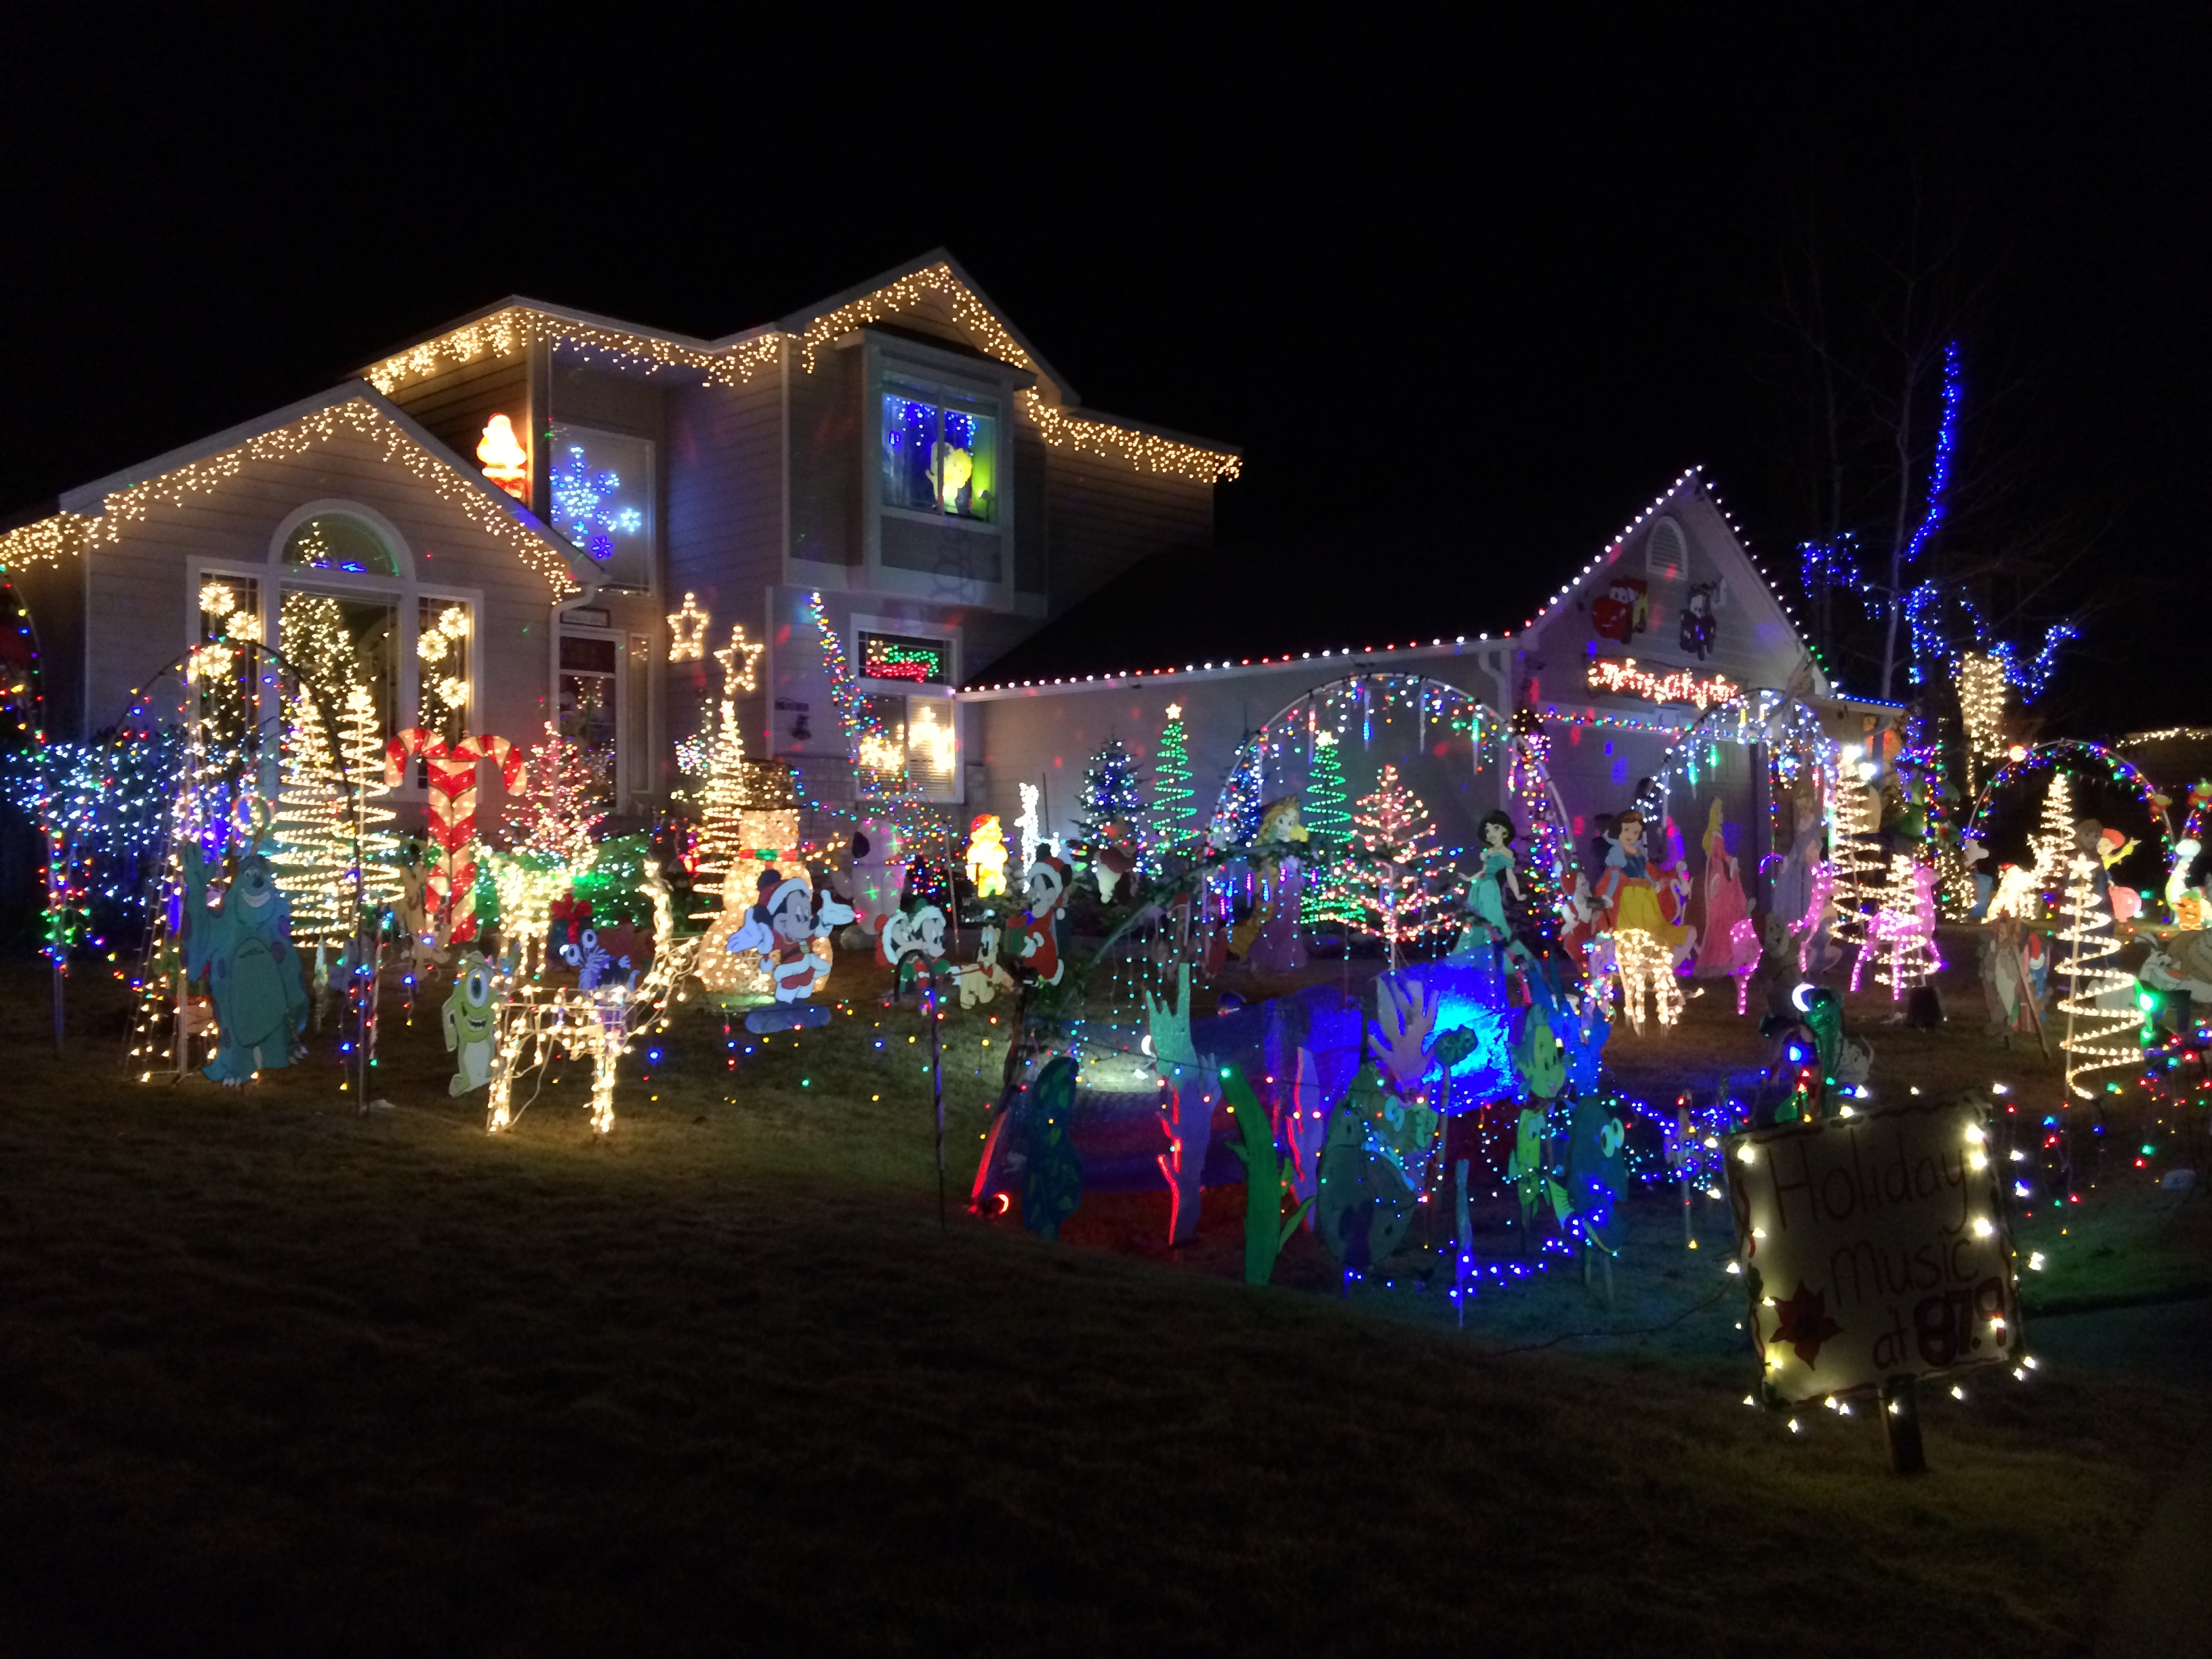 a look at the holiday disney themed house i visited on christmas eve